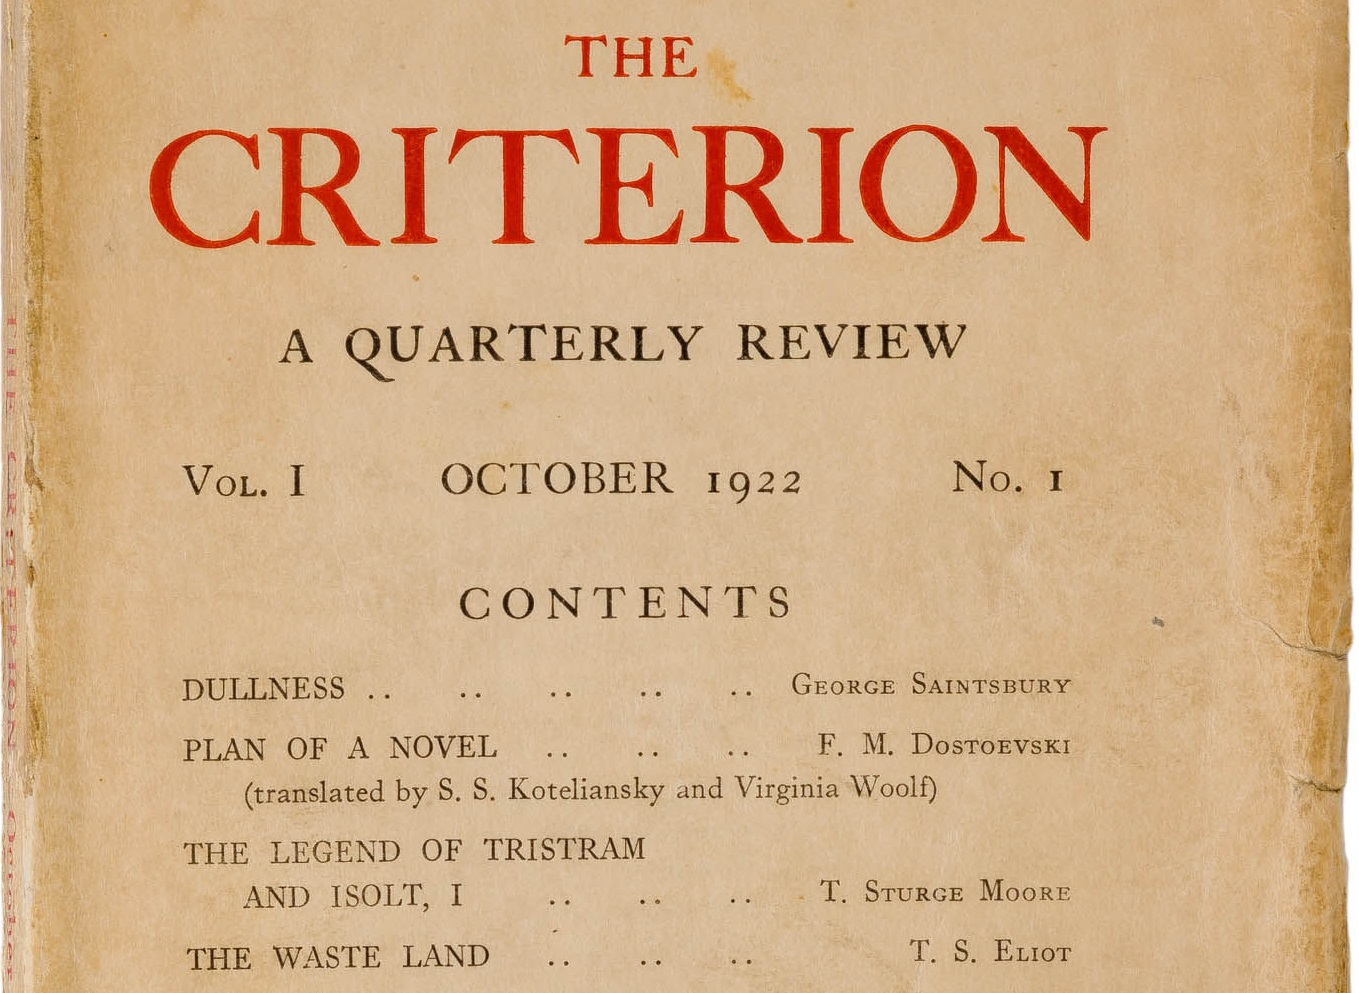 October 15 – T. S. Eliot establishes The Criterion magazine, containing the first publication of his poem The Waste Land.